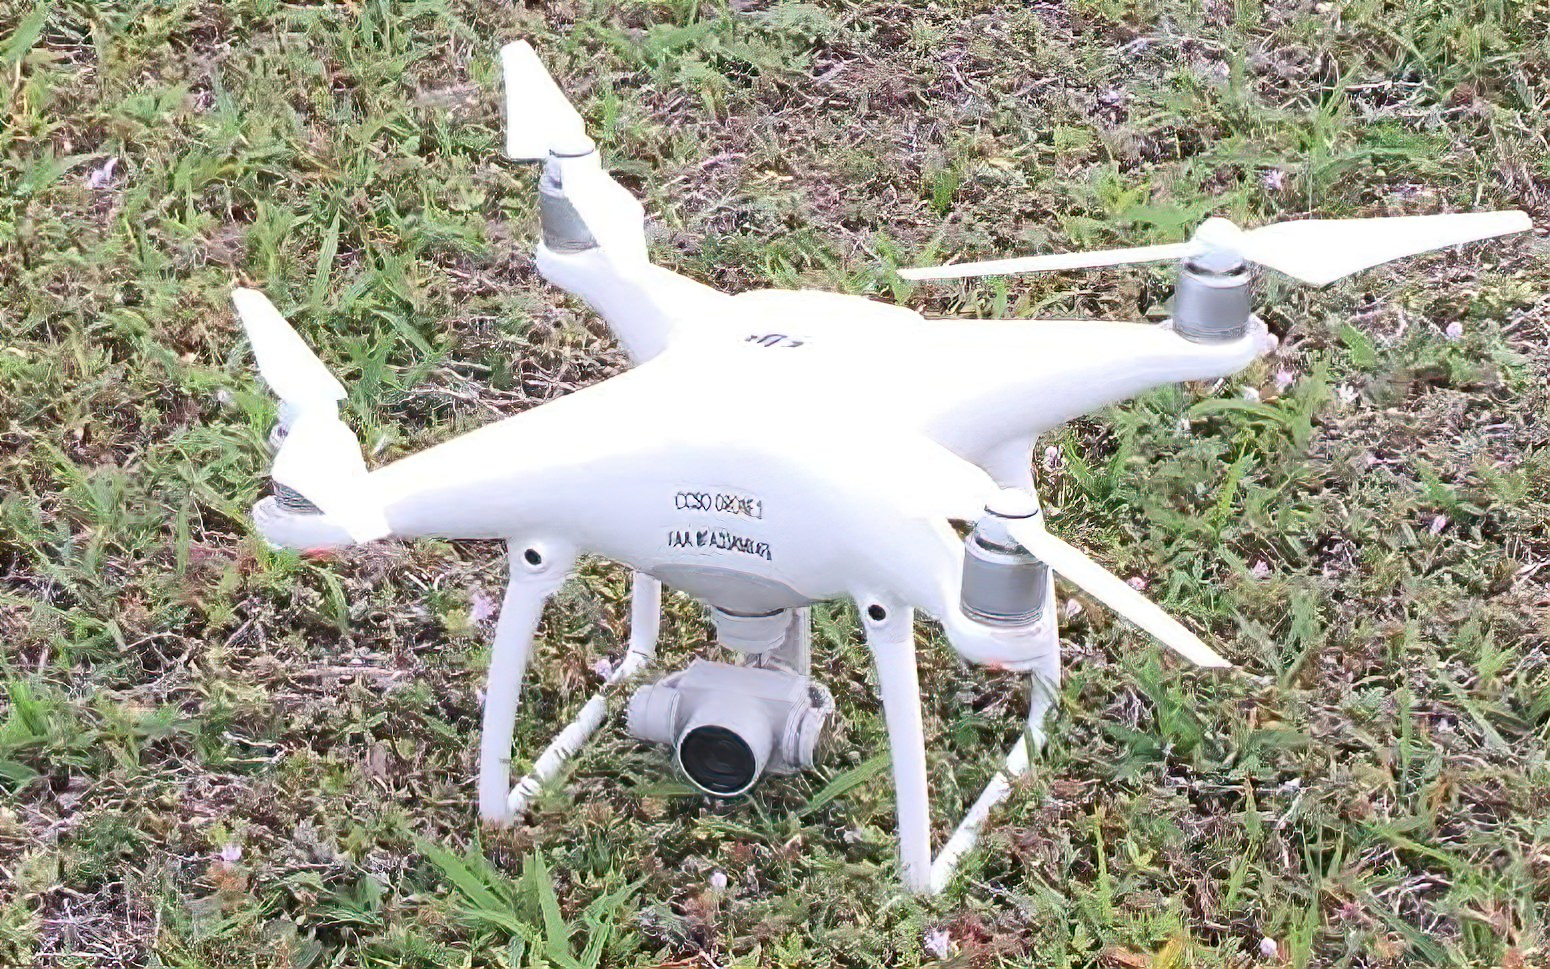 Six drones deployed to find missing 77-year-old man in Florida